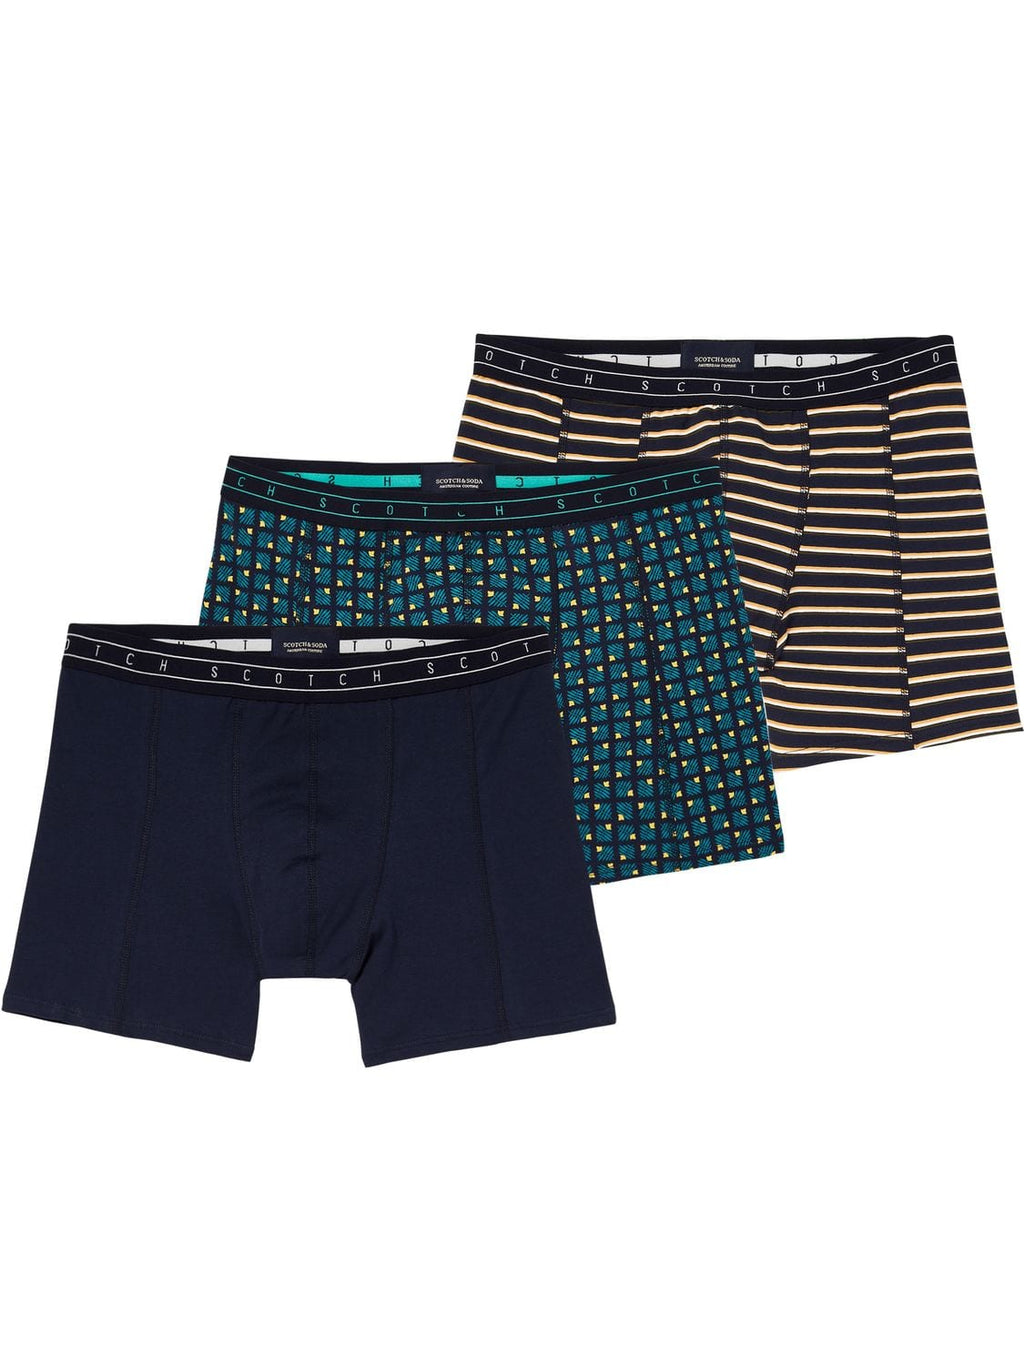 Scotch & Soda 3 Pack Boxer Shorts